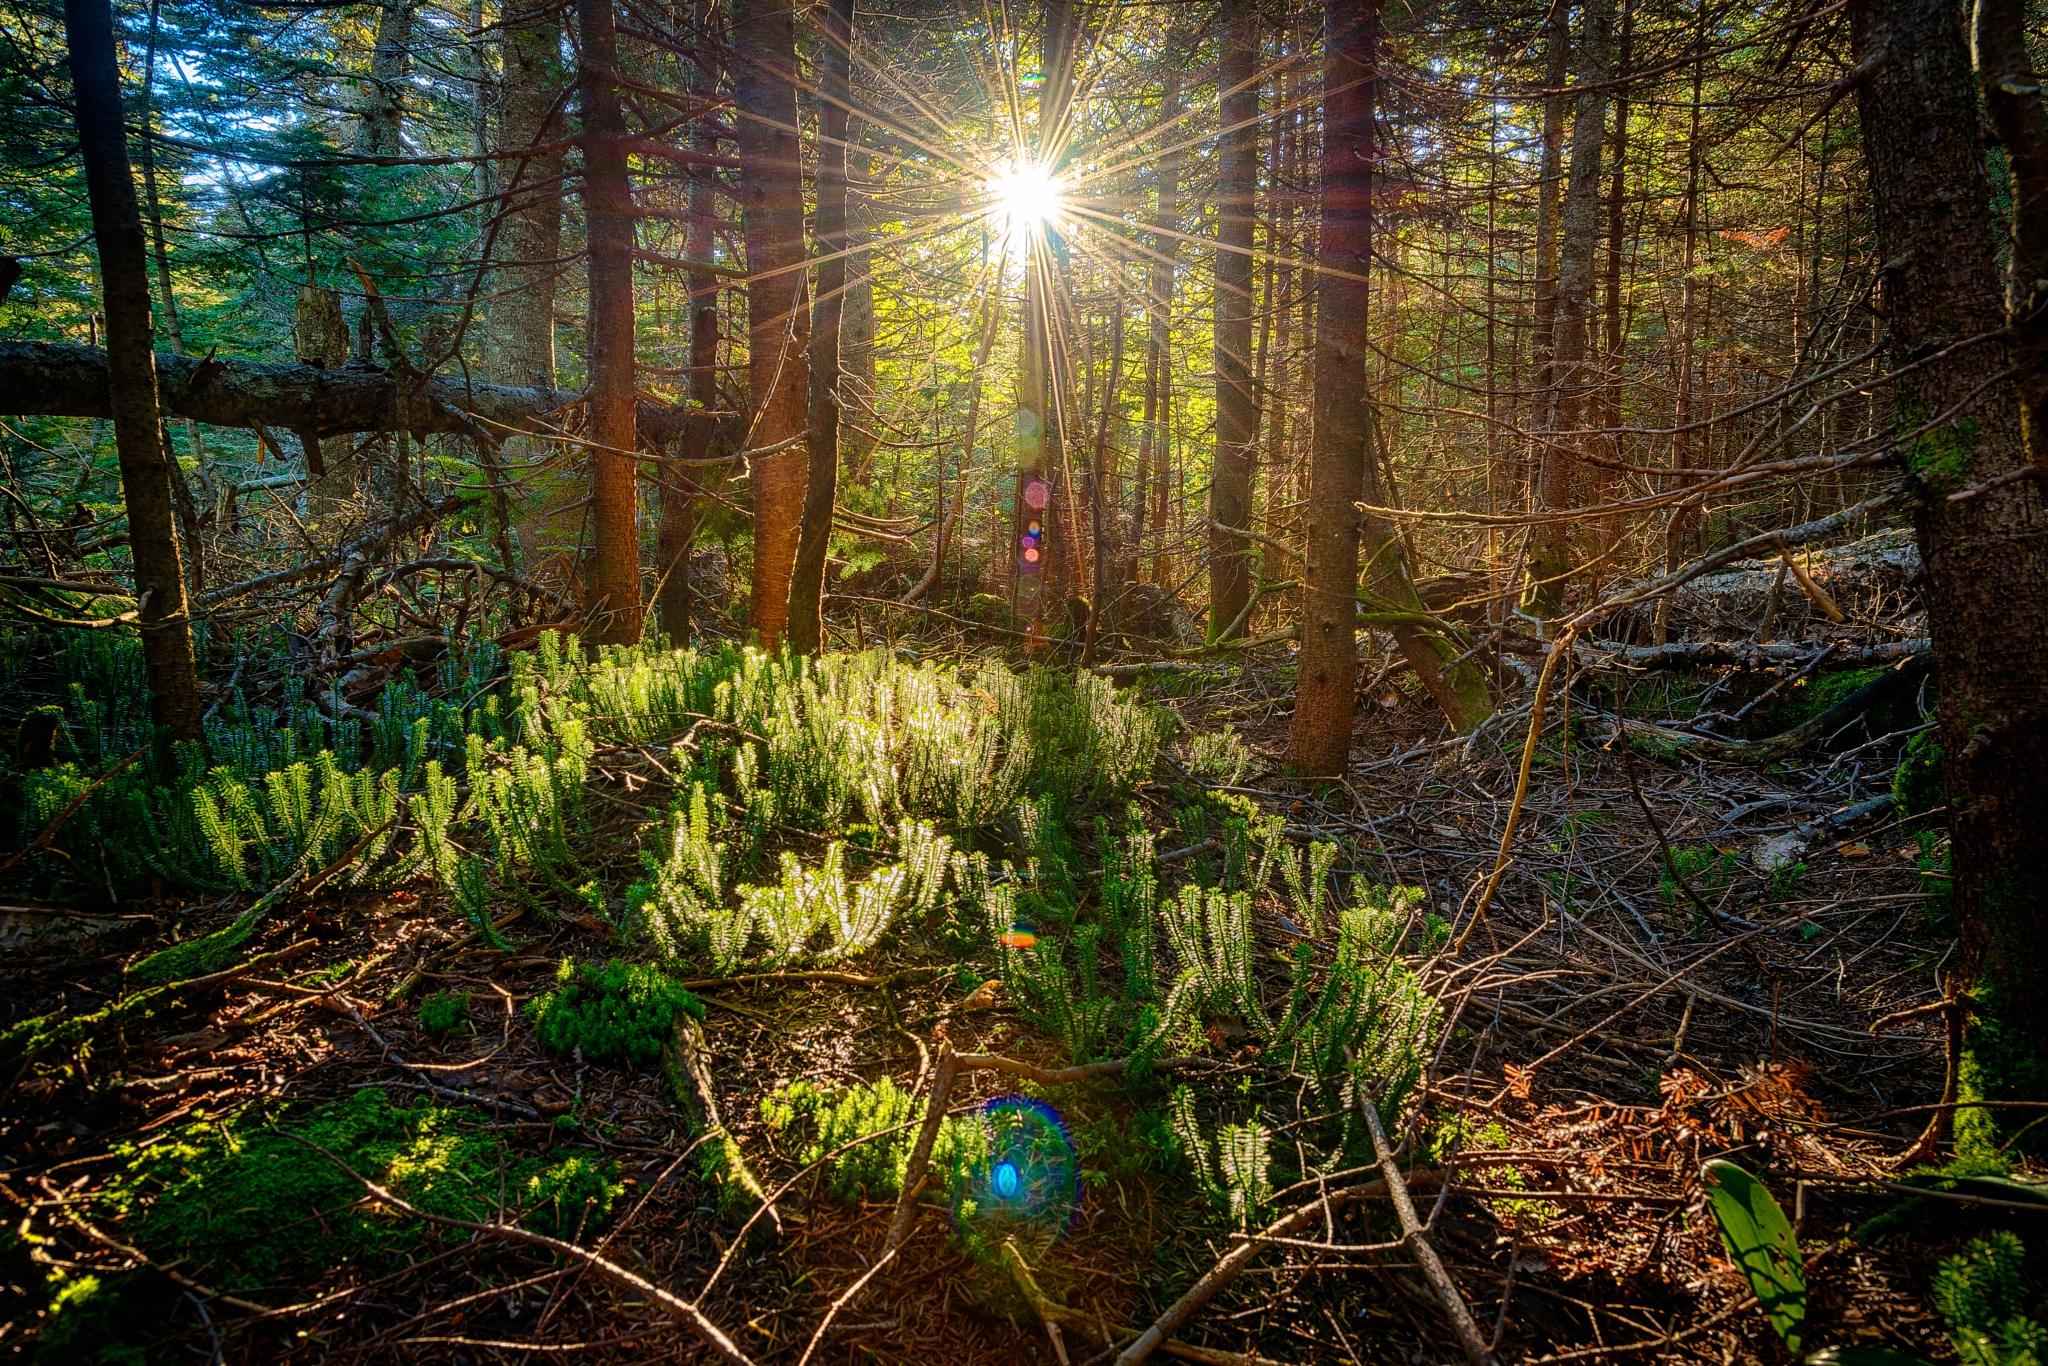 Early Morning Backcountry by Andrew Noiles